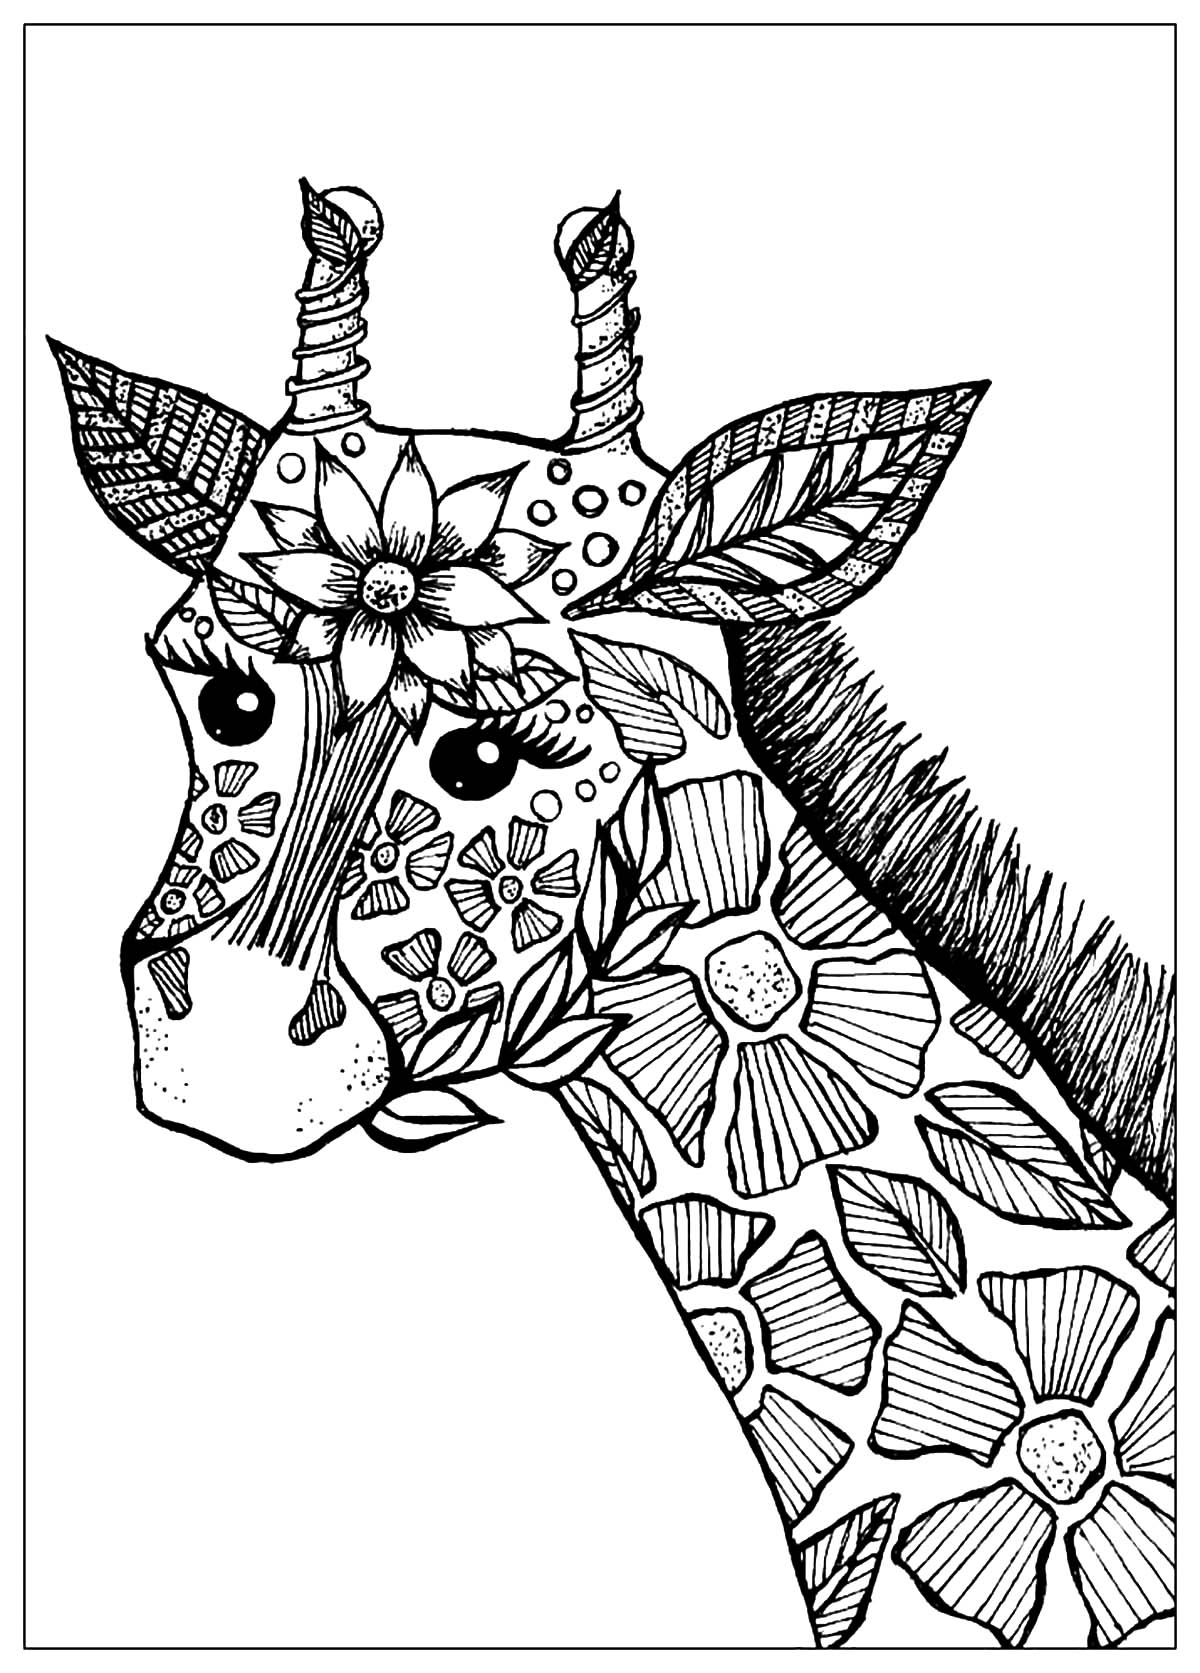 giraffes coloring pages giraffe head with flowers giraffes adult coloring pages pages coloring giraffes